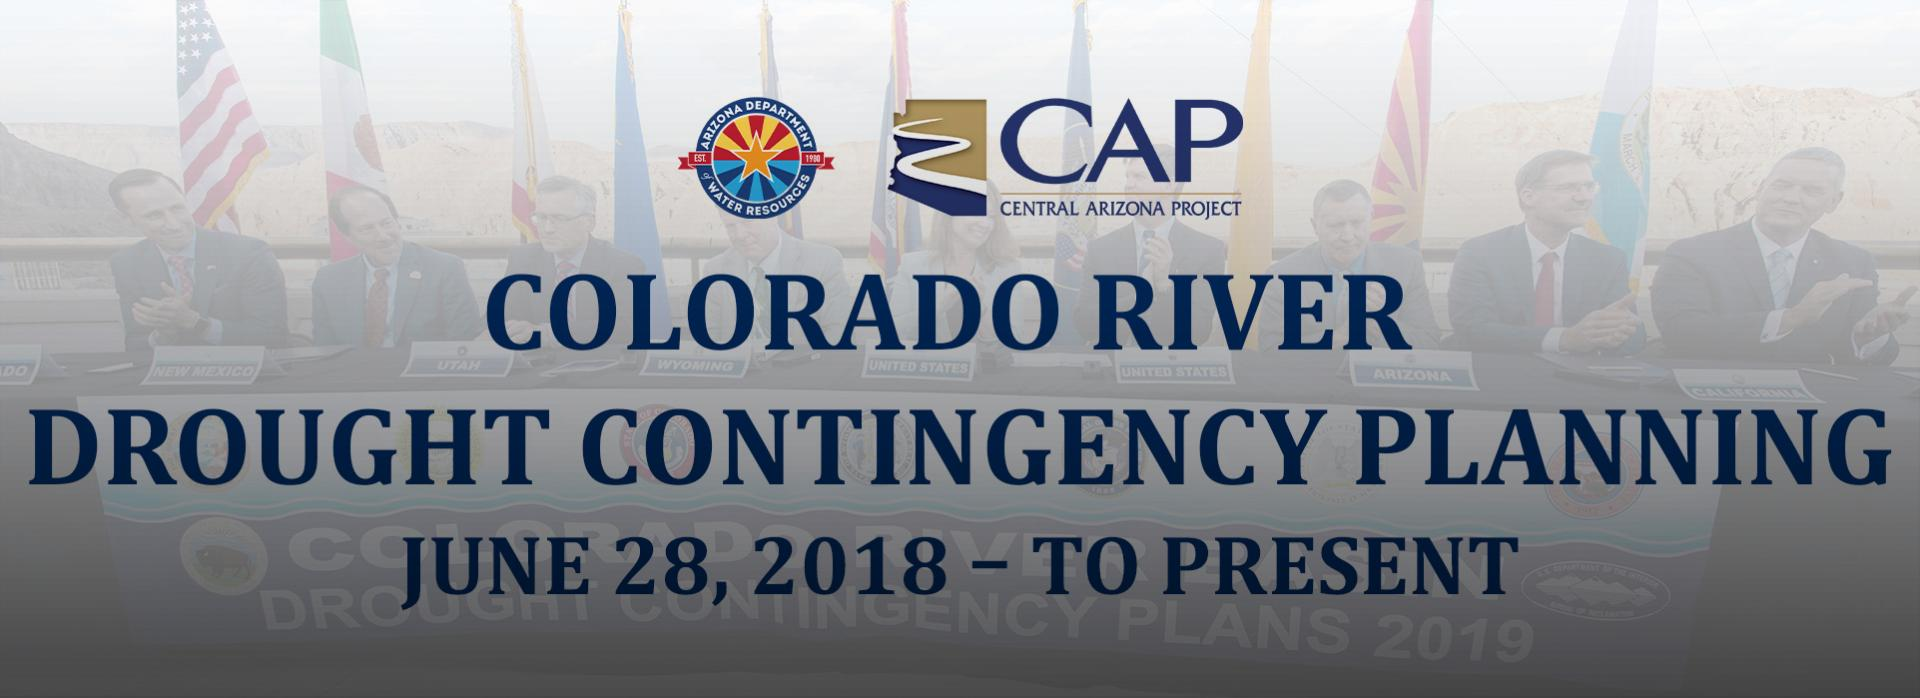 Colorado River Drought Contingency Planning